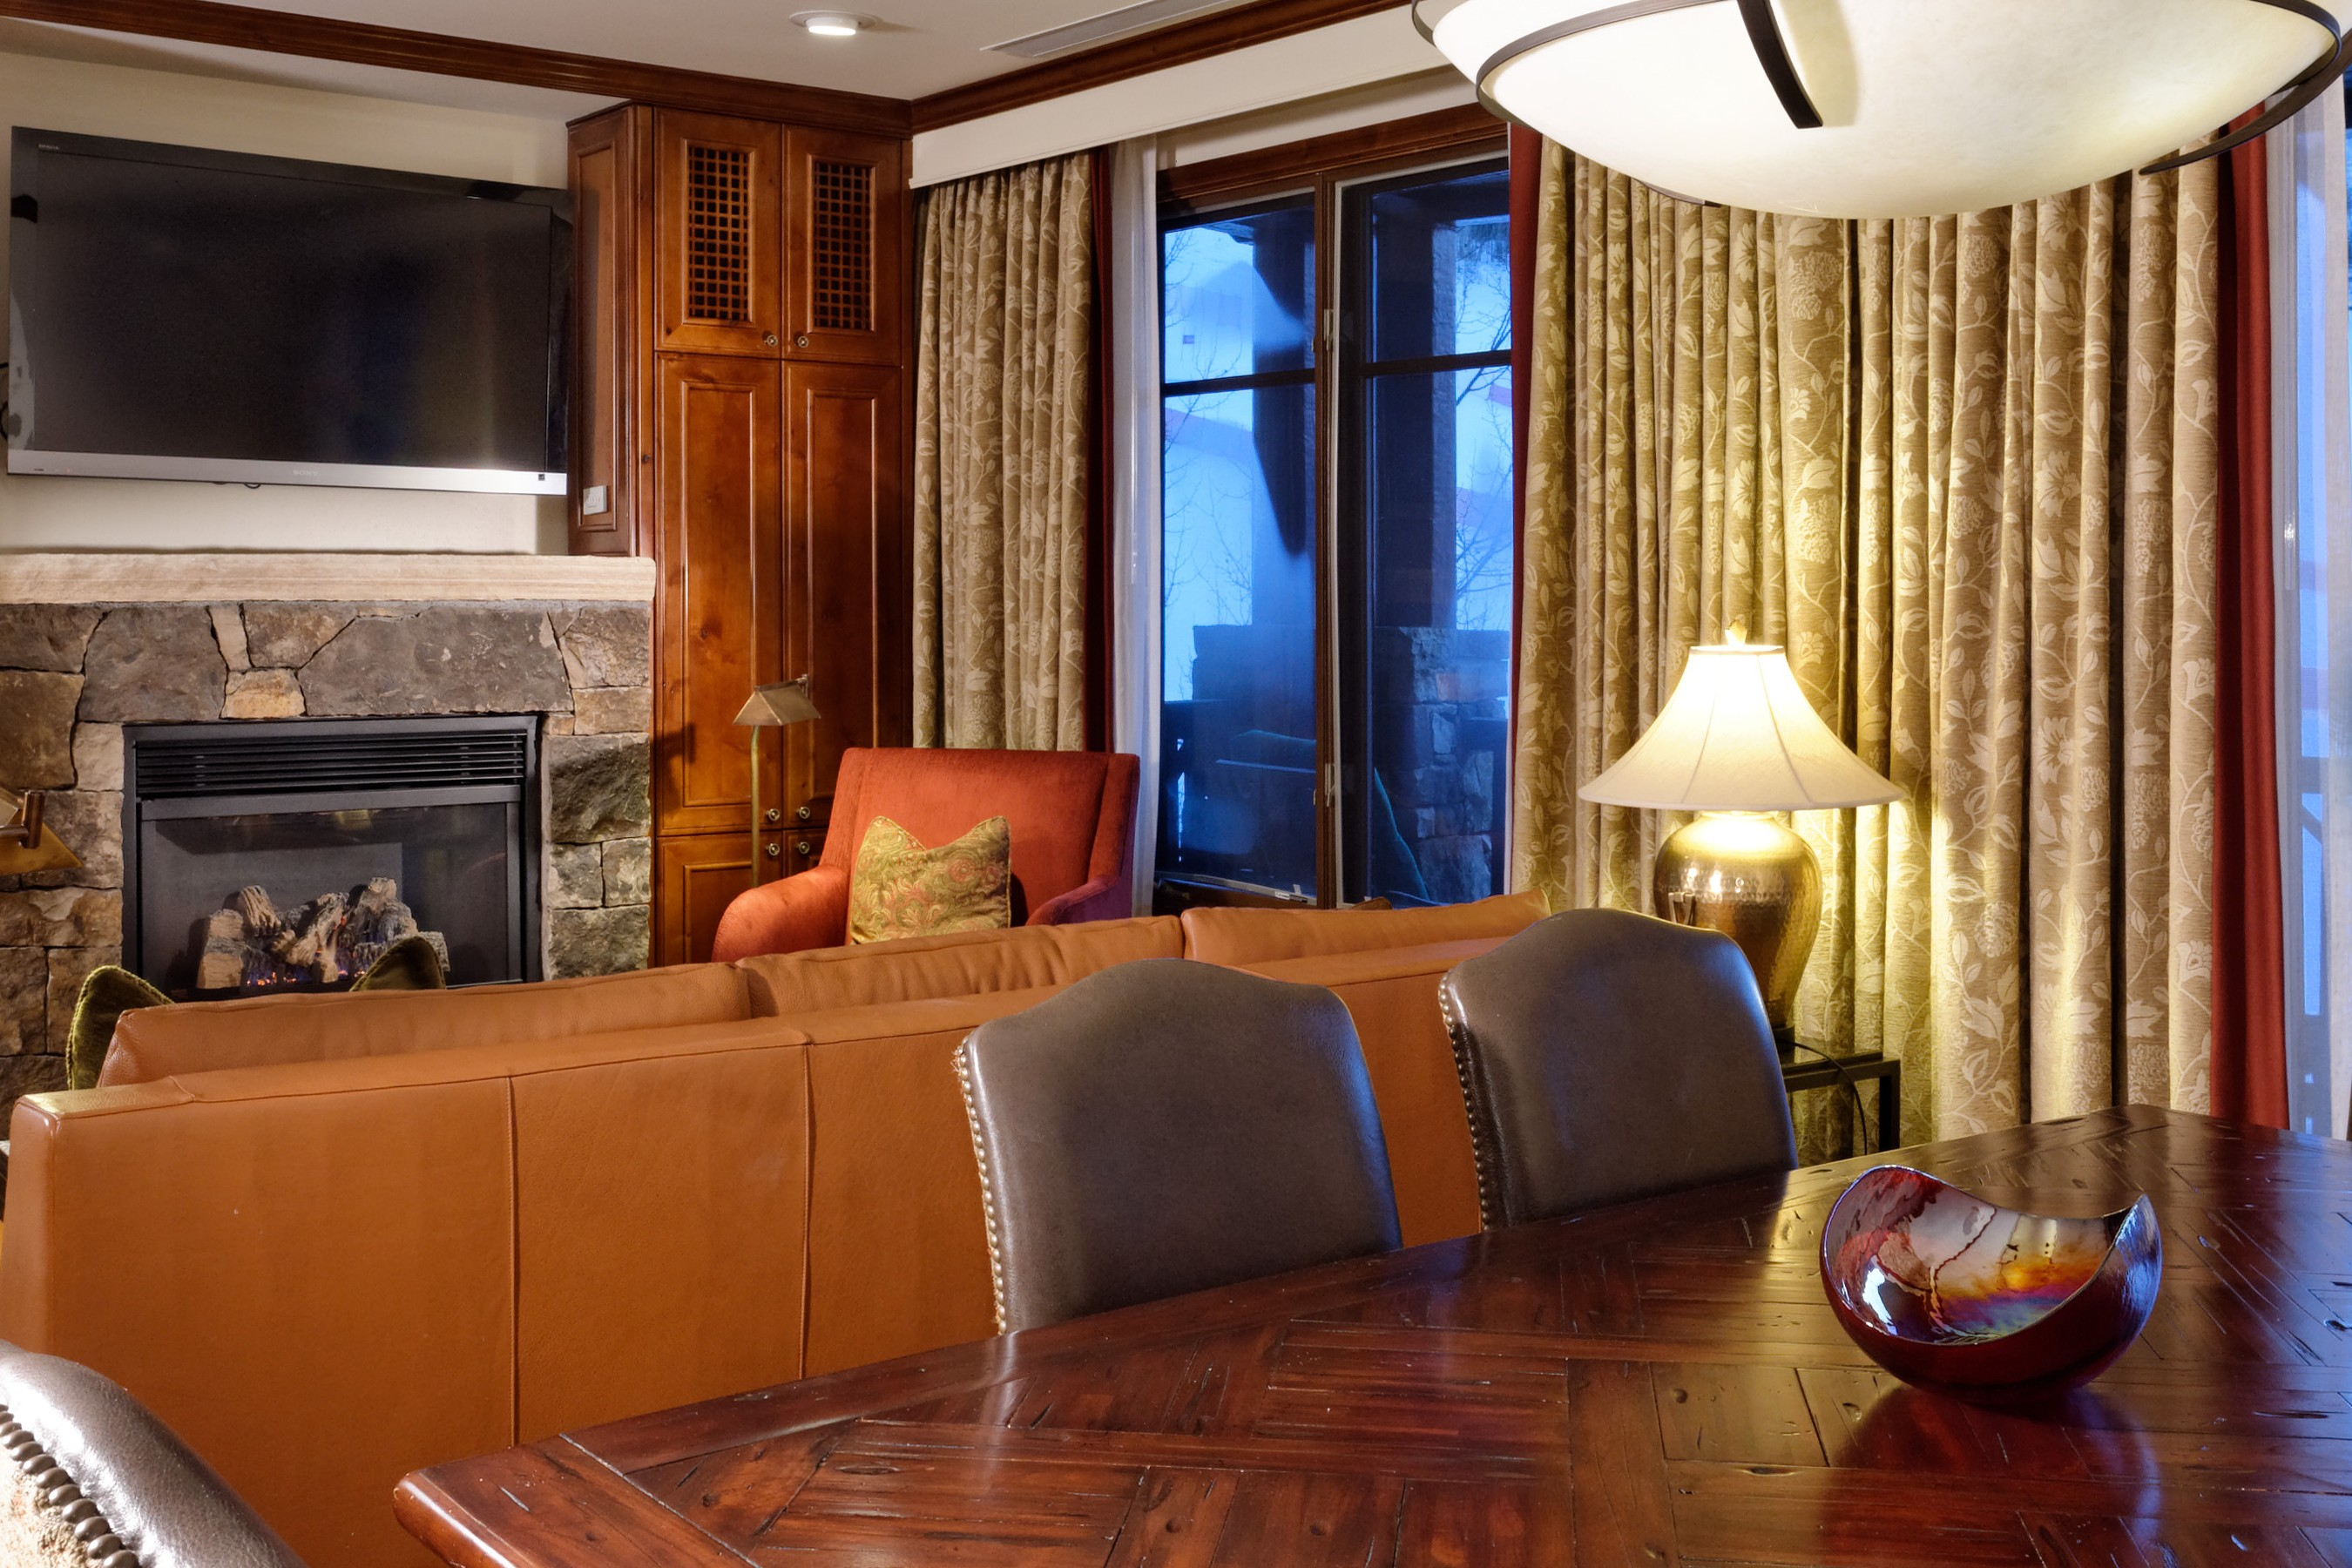 Fractional Ownership for Sale at Ritz-Carlton Club Aspen Highlands Fractional Condo Interest 0075 Prospector Road, 8106 Winter Interest 2, Ritz-Carlton Club Aspen, Colorado, 81611 United States